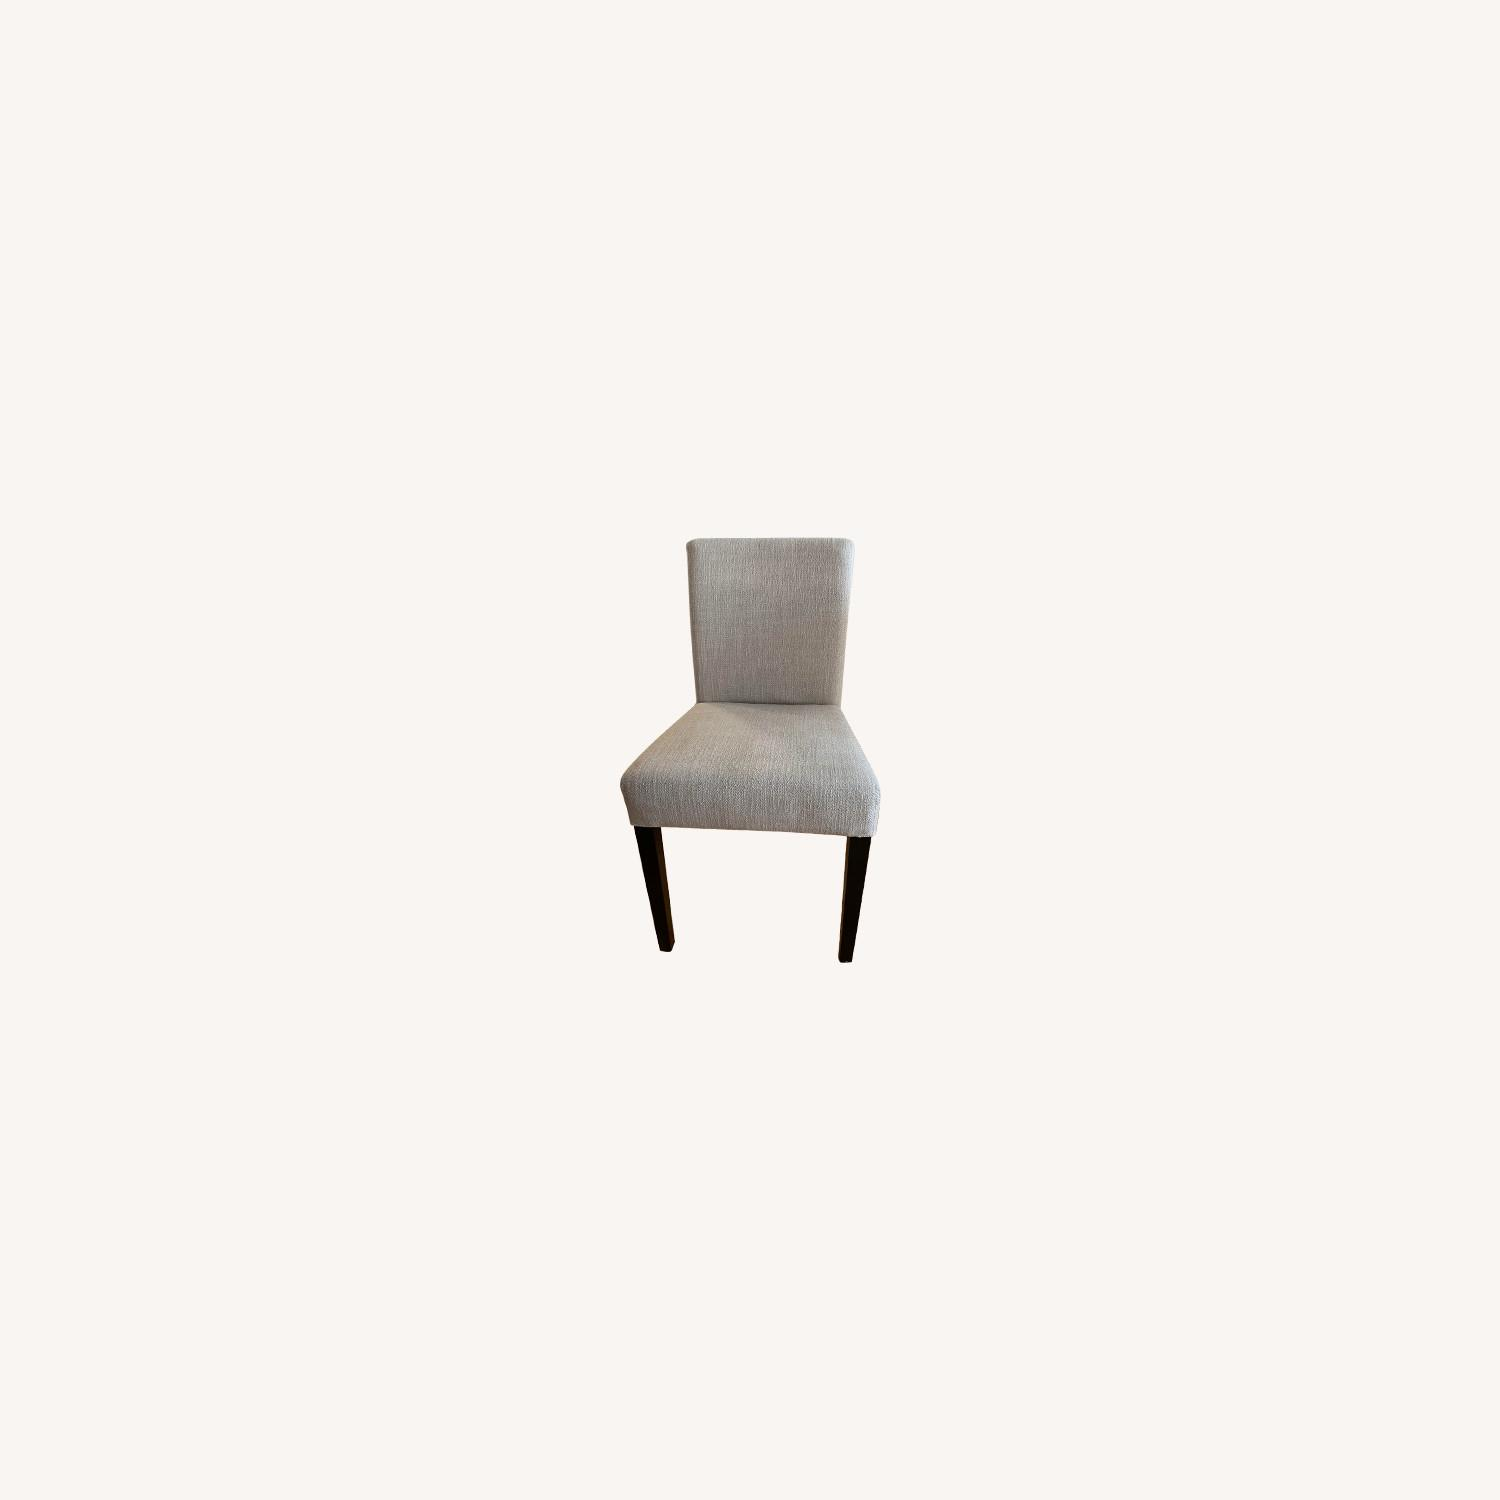 Crate & Barrel Lower Pewter Upholstered Dining Chair - image-0